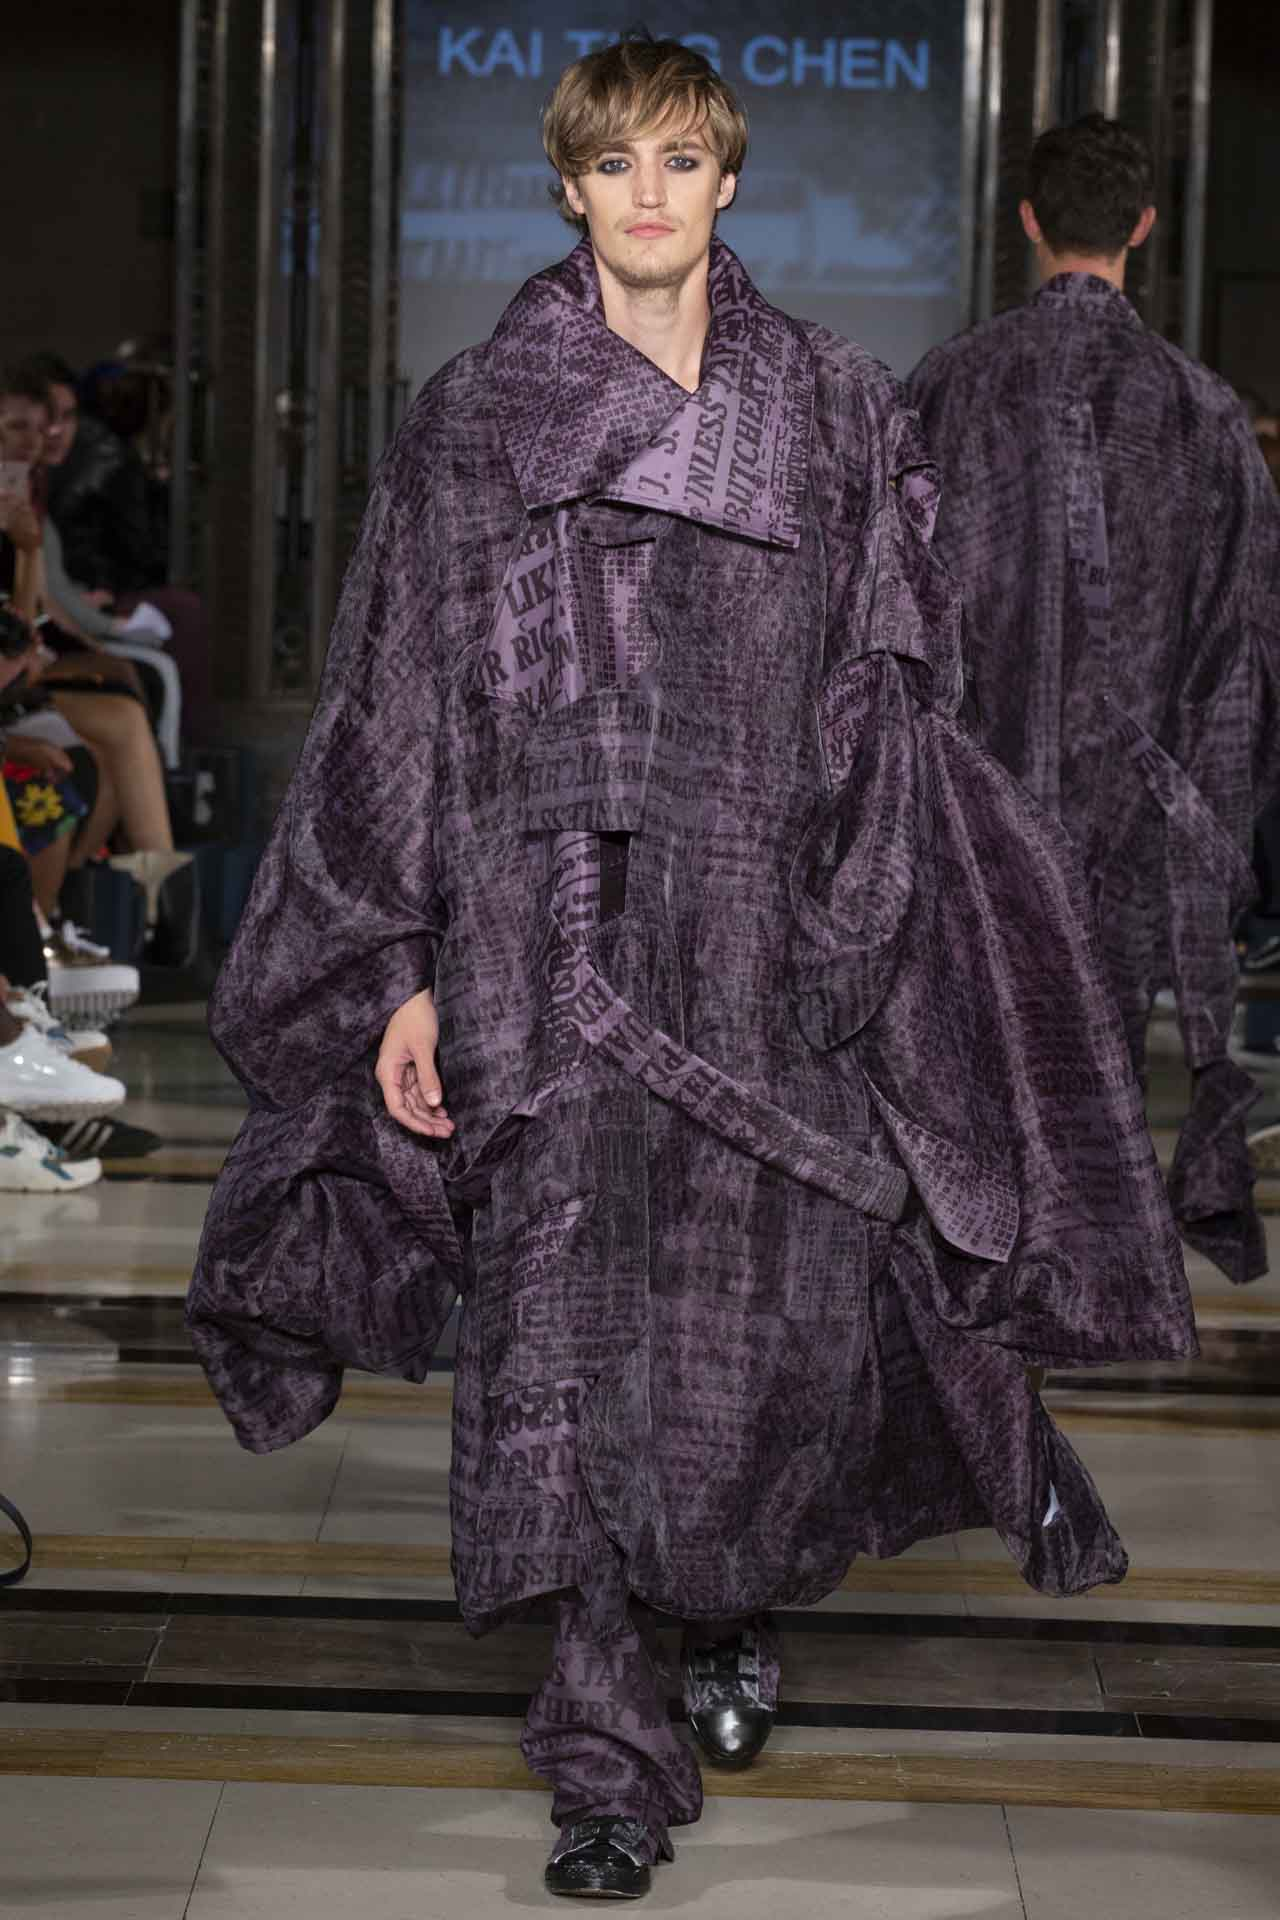 Fju talents ss19 fashion scout (19)